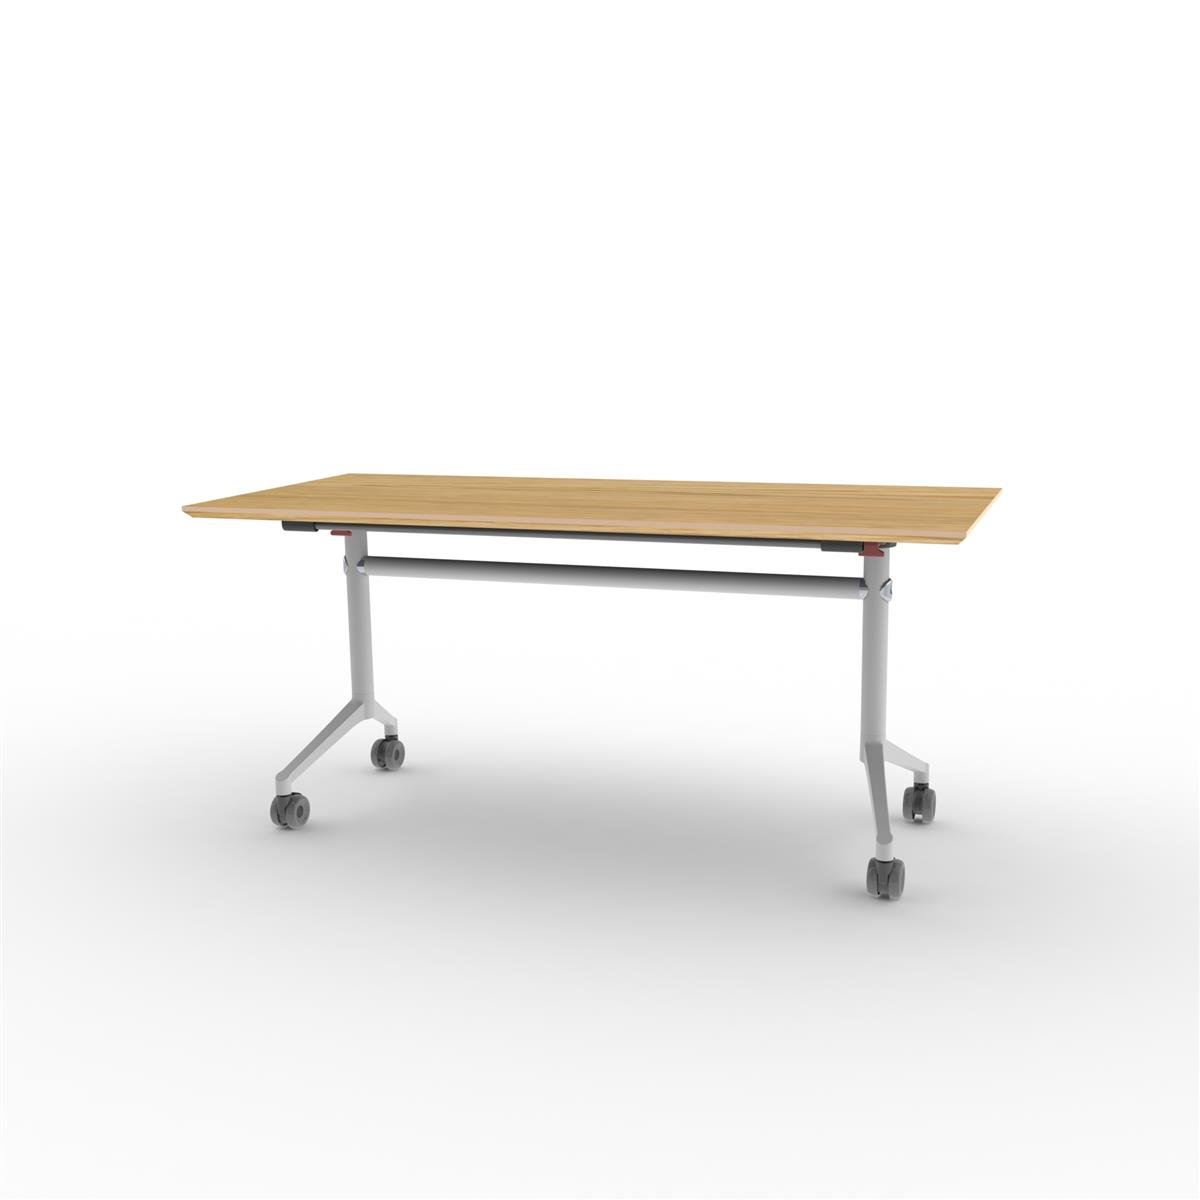 X1 Seamless Folding Table 160x70 - eik finér & hvitt understell